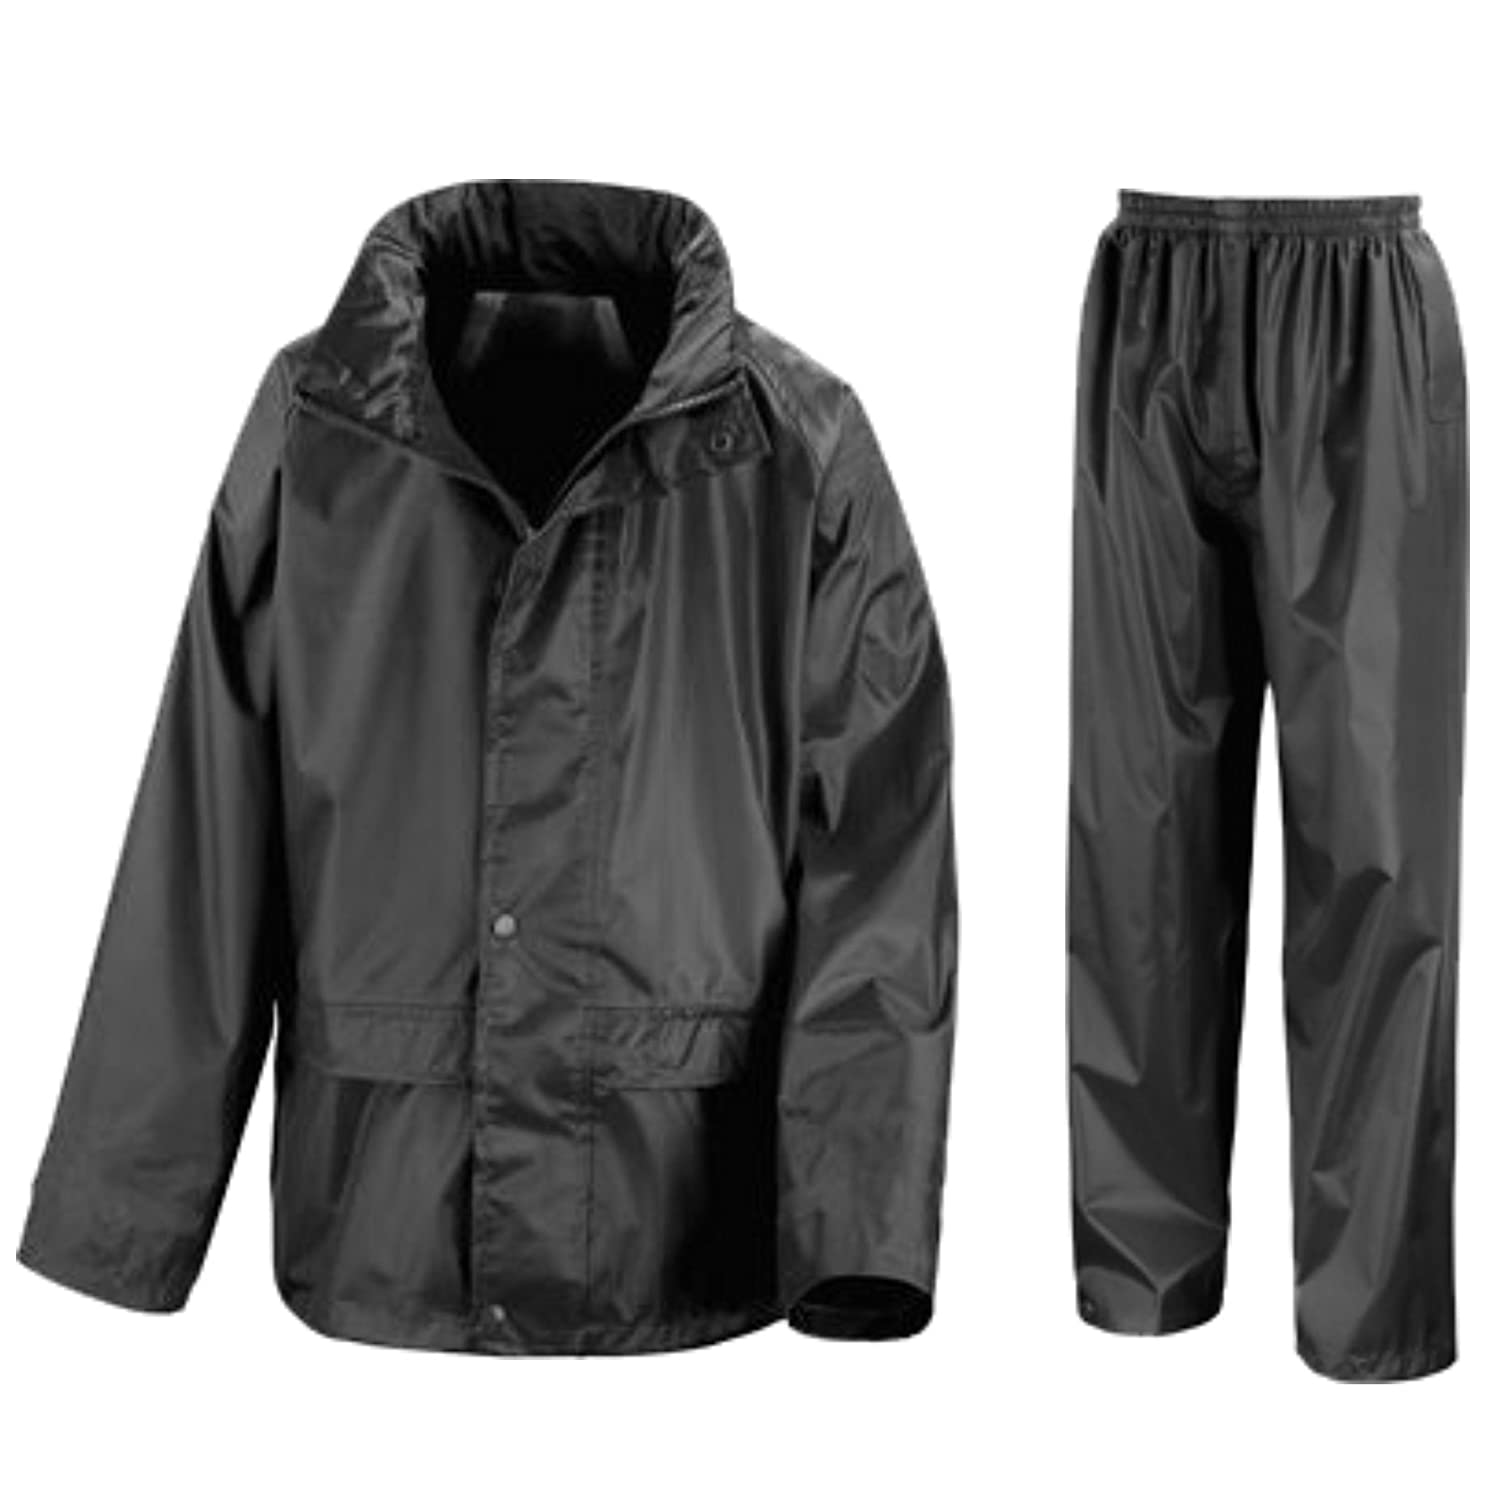 Kids Waterproof Jacket & Trousers Suit Set in Black, Navy Blue or ...